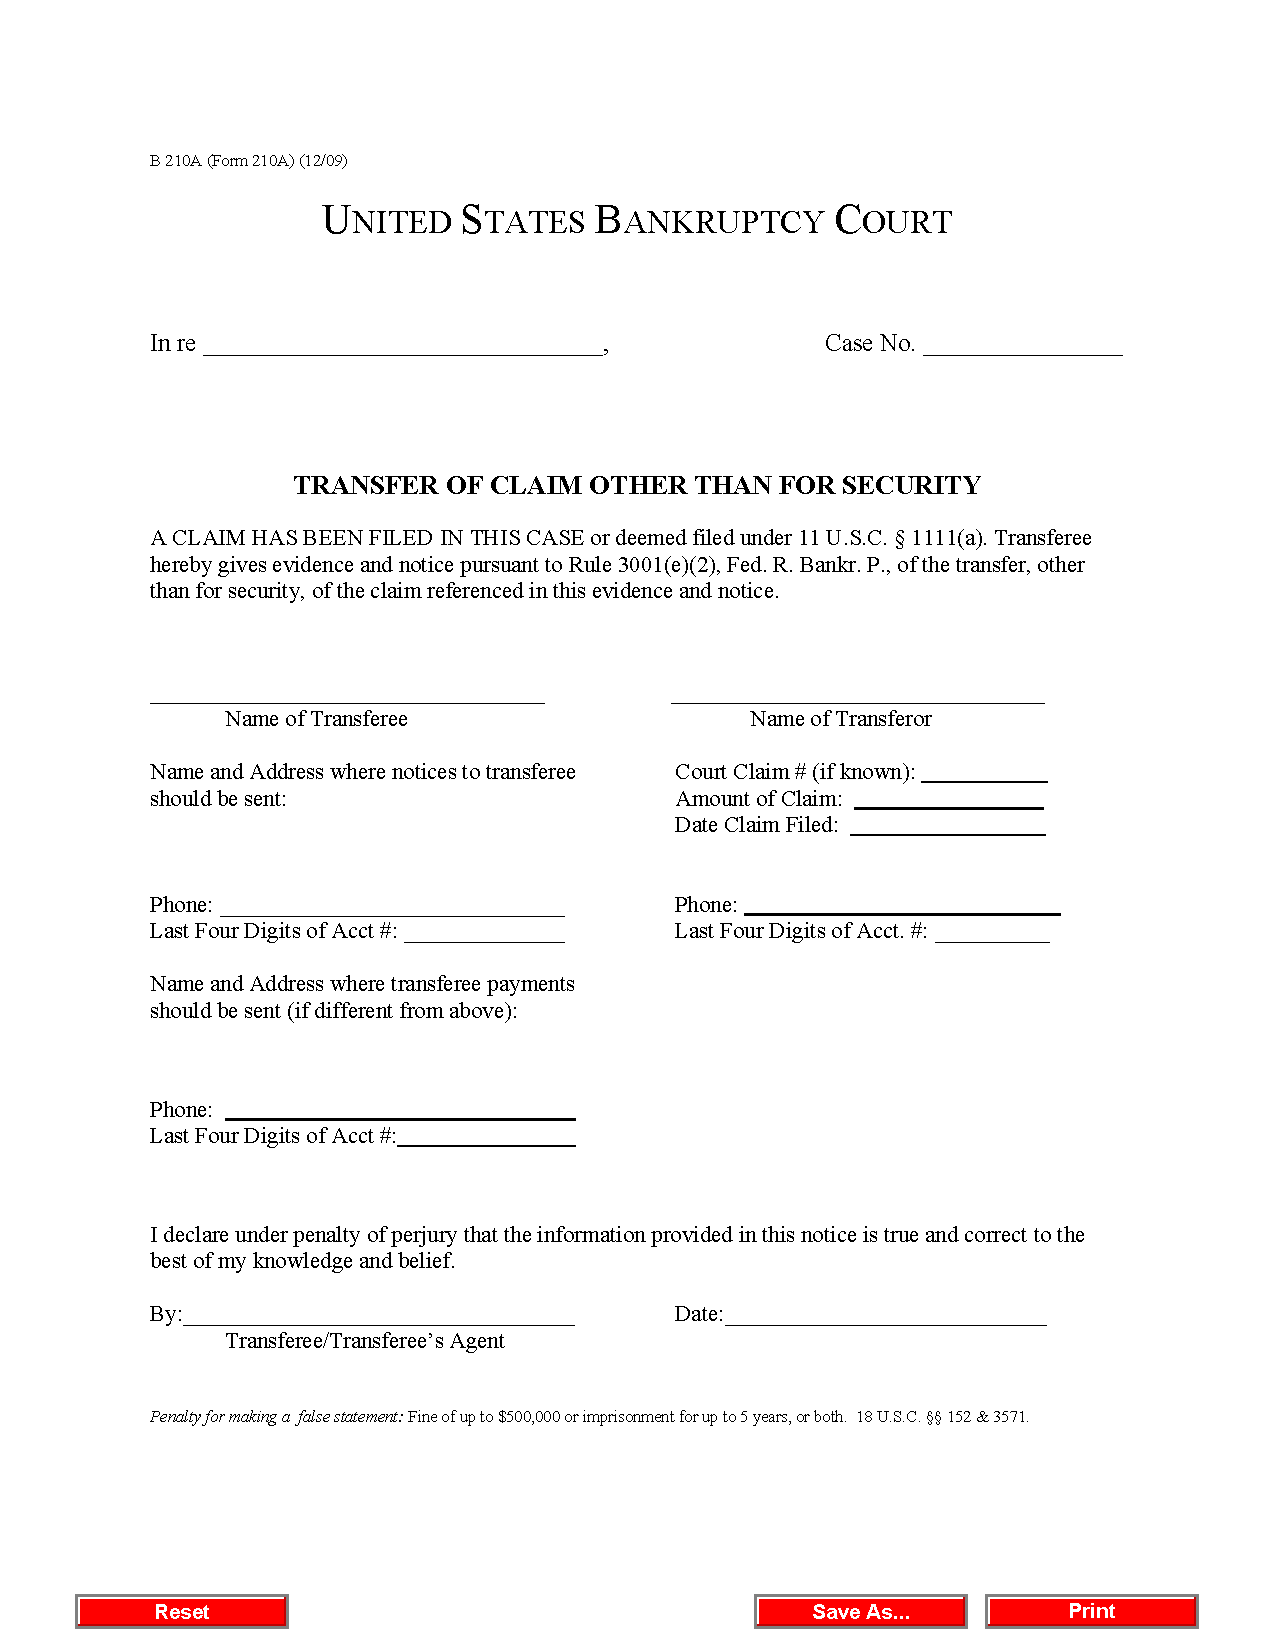 Form B 210A Transfer of Claim Other Than for Security (12/09)